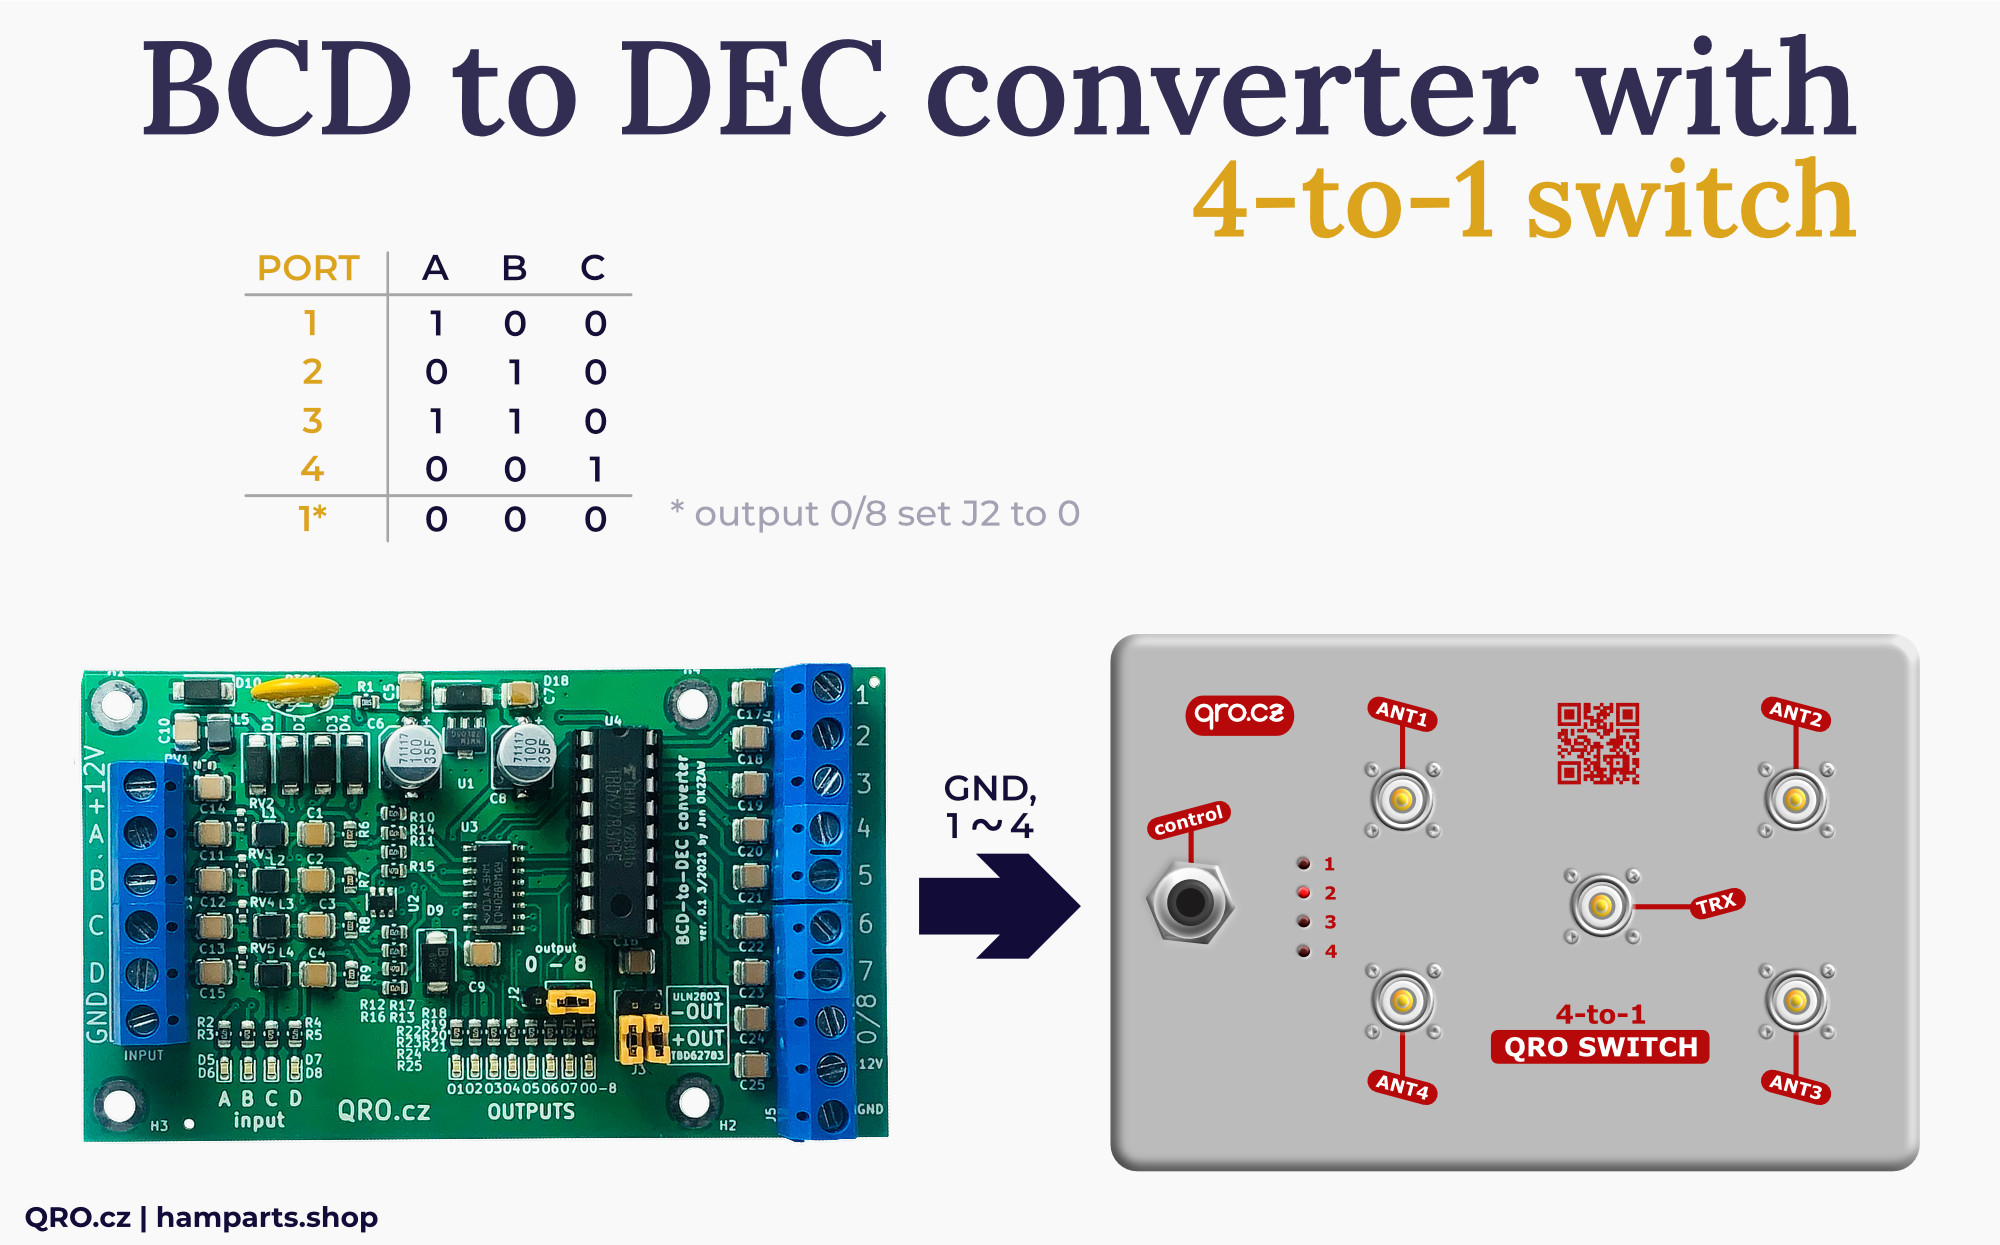 BCD to DEC converter with 4 to 1 antenna switch by qro.cz hamparts.shop